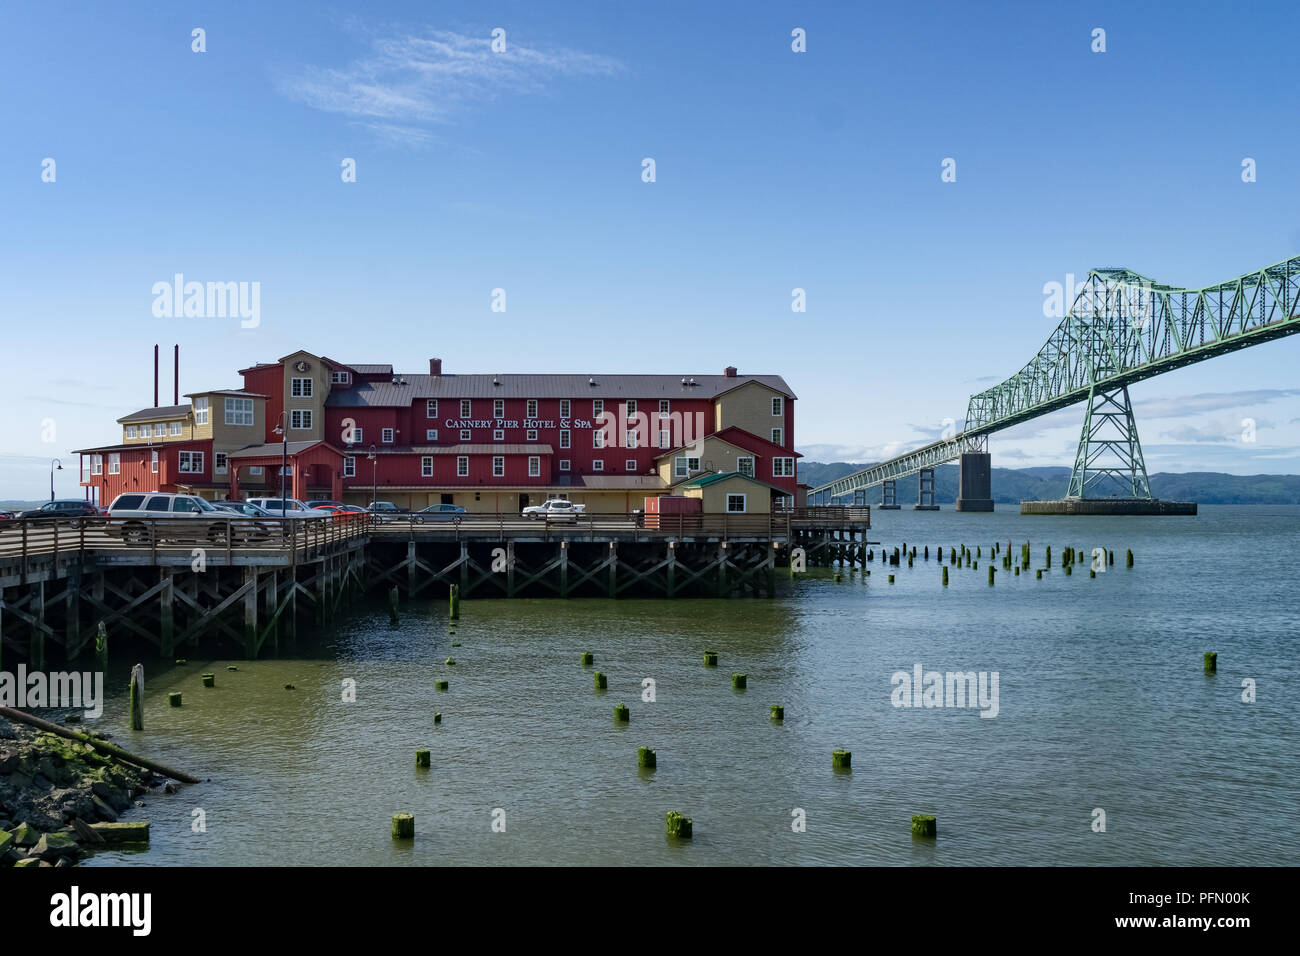 The Cannery Pier Hotel and Spa aside the Megler Bridge in Astoria, Oregon, Columbia River, USA. - Stock Image